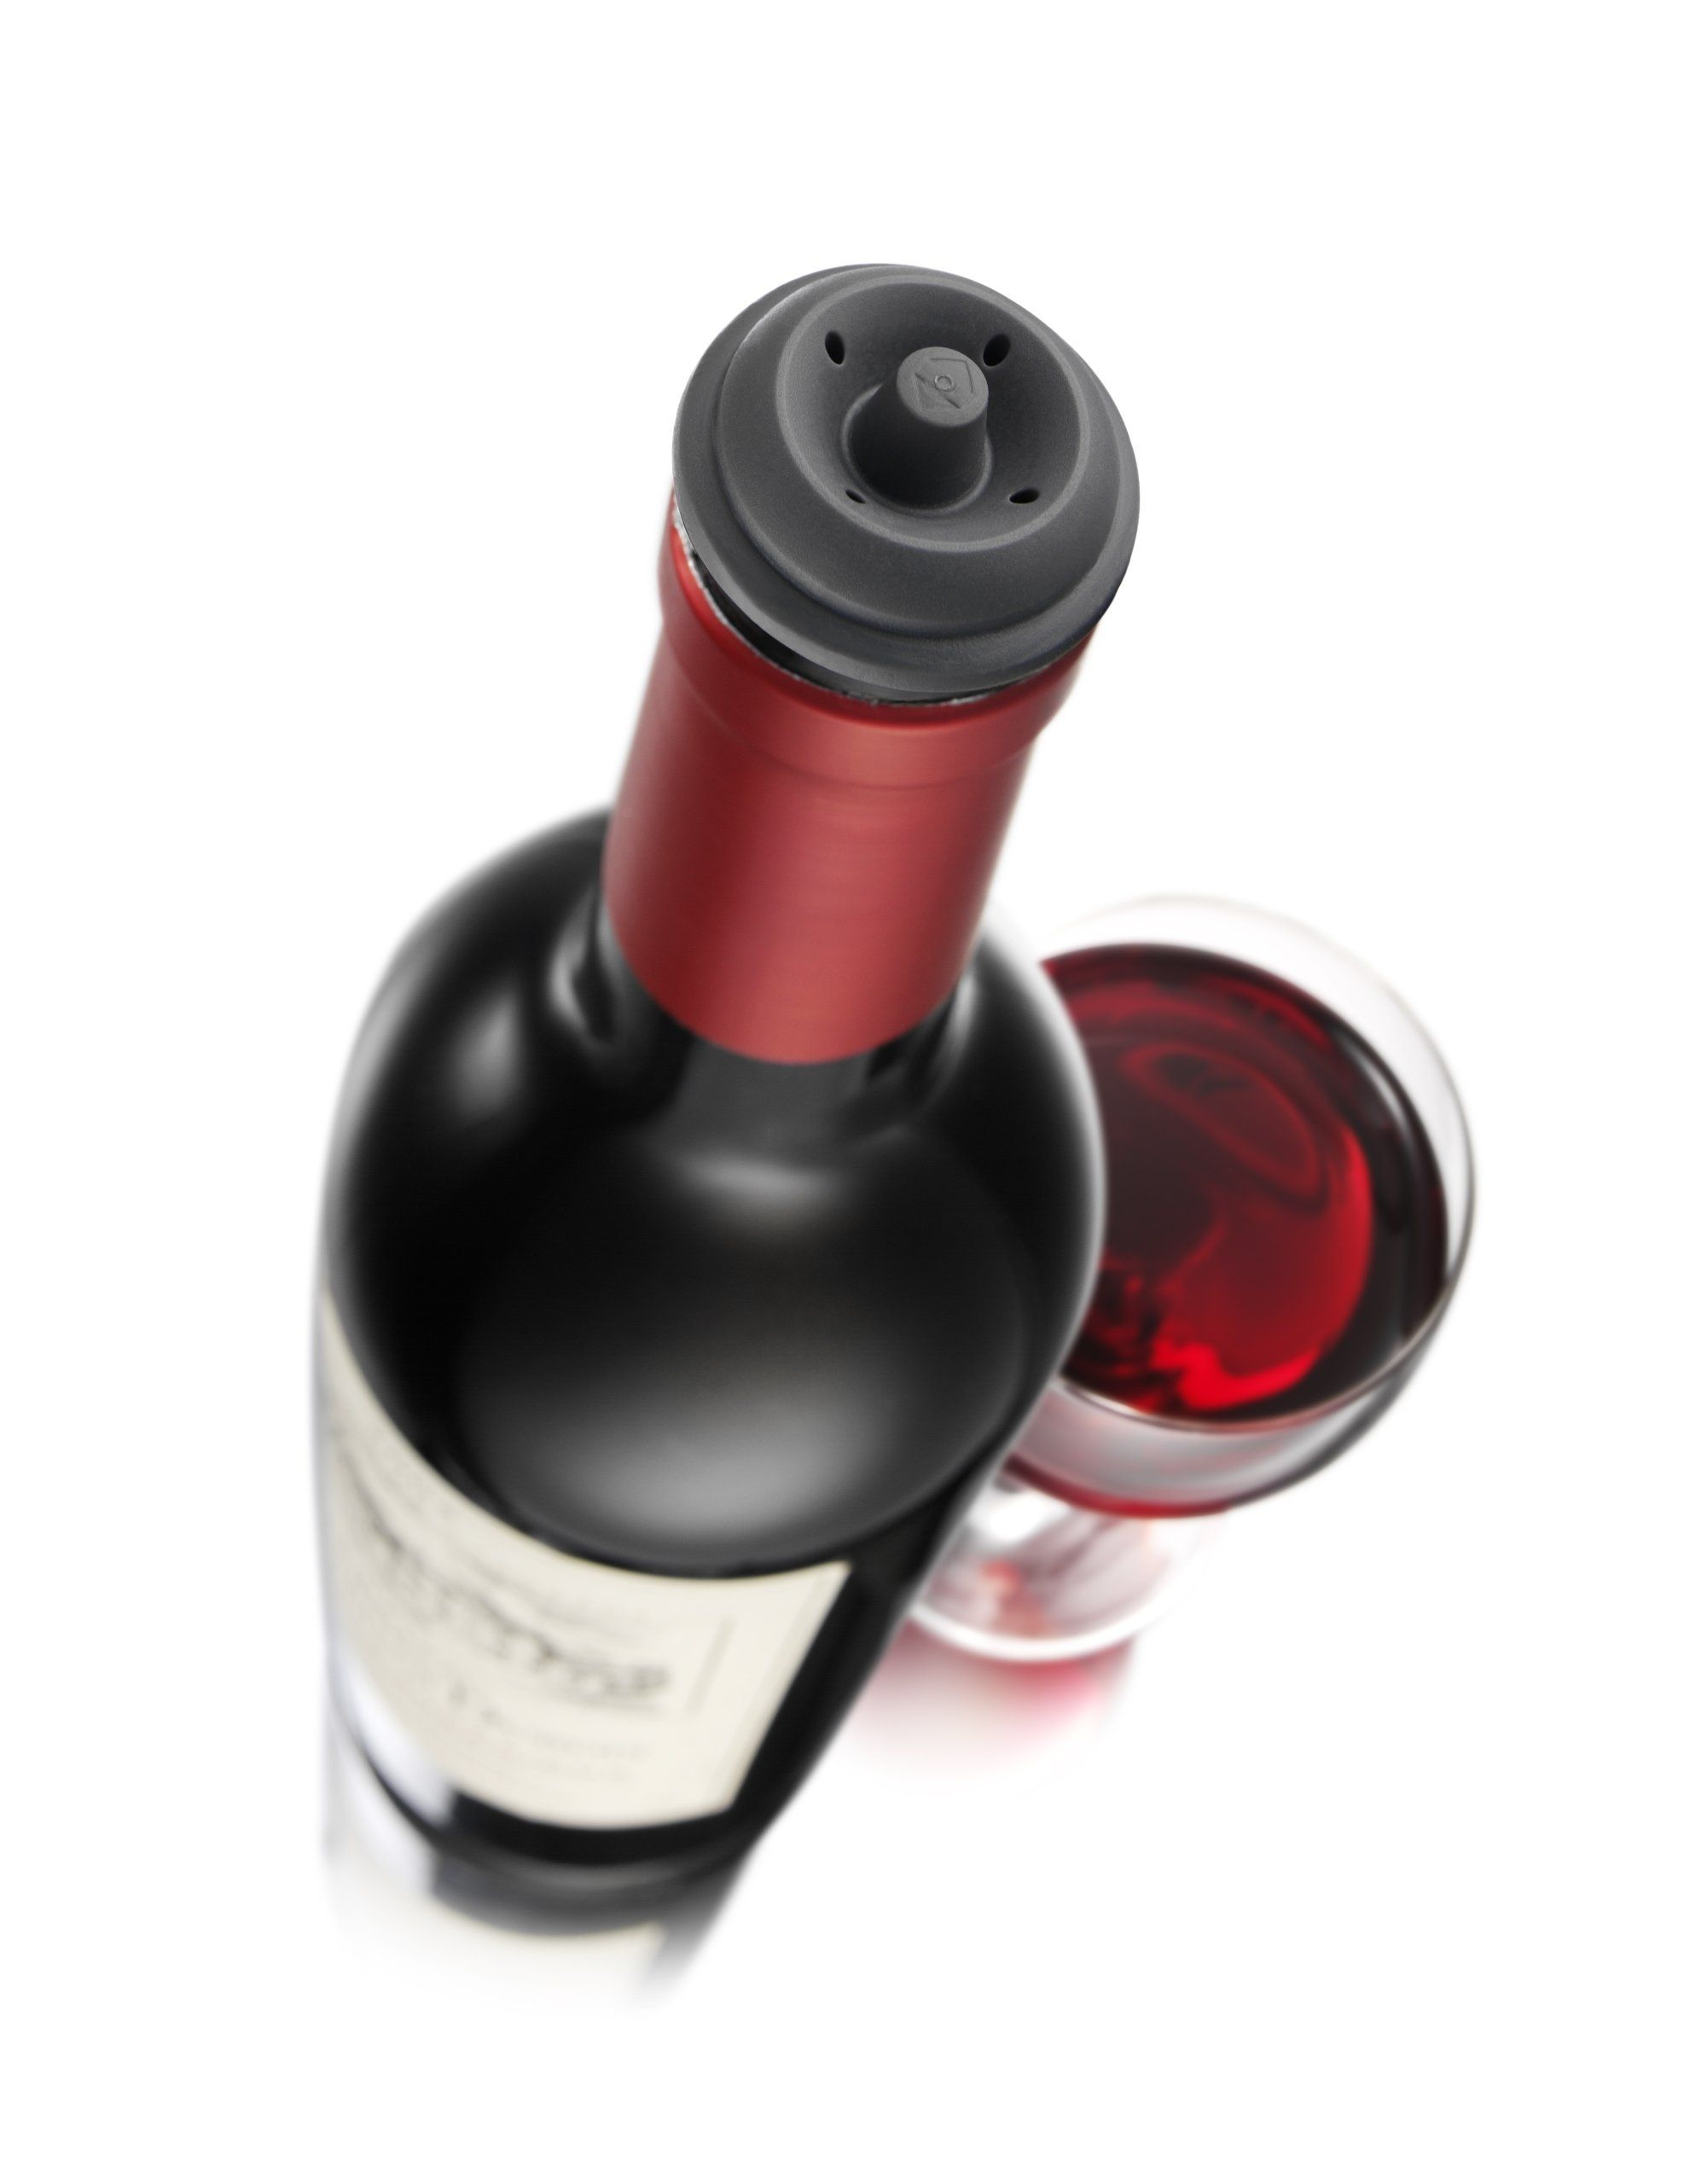 Amazon Com Vacu Vin Wine Saver Pump With 2 X Vacuum Bottle Stoppers Black Wine Bottle Stoppers Kitchen Wine Bottle Stoppers Wine Gift Set Wine Stoppers